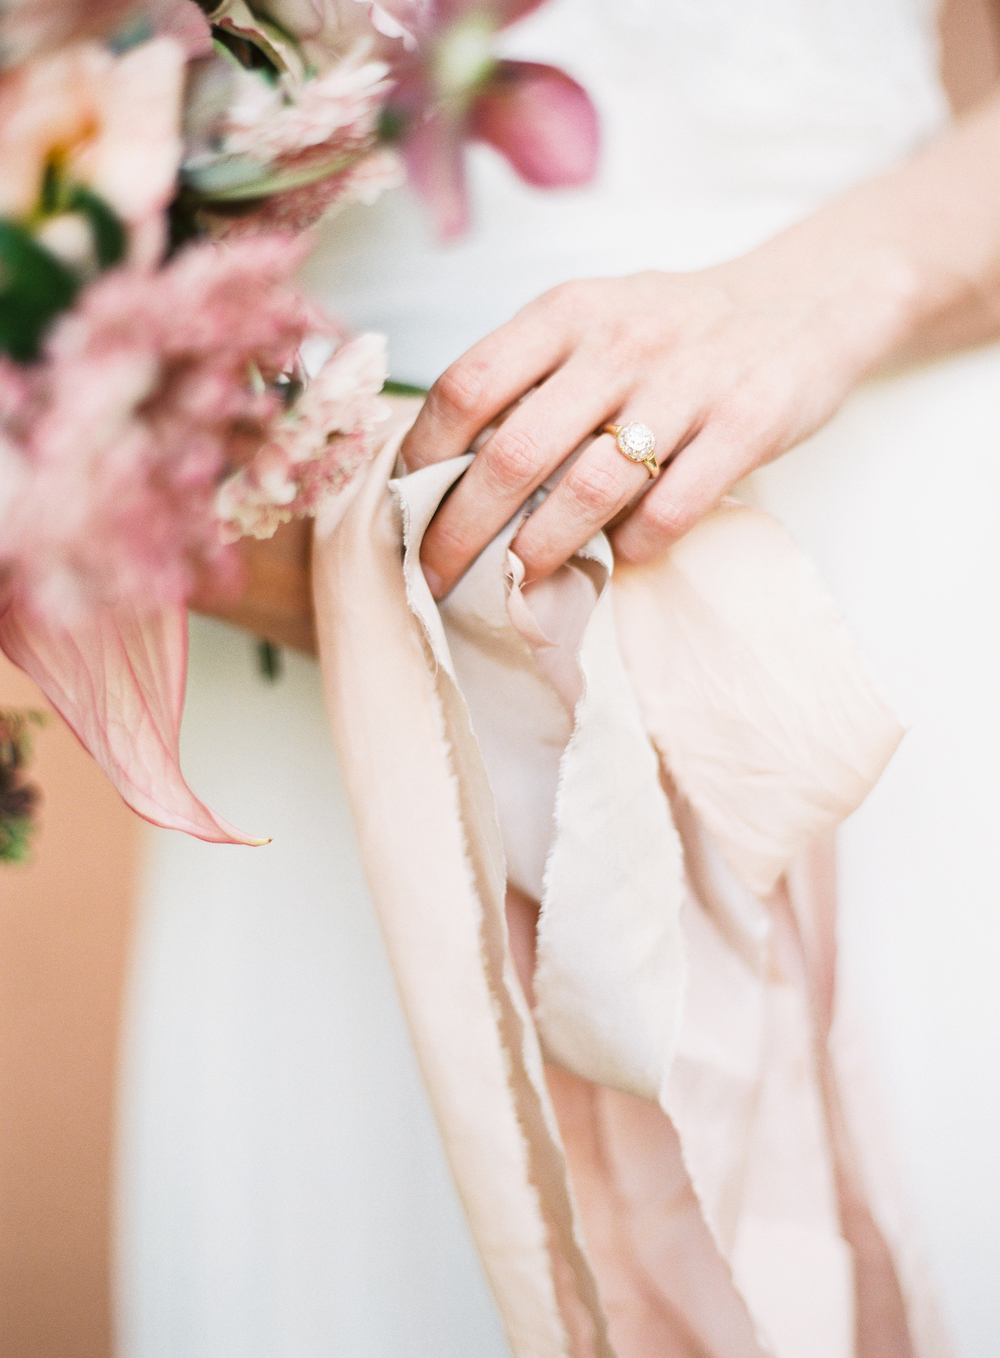 Trumpet & Horn vintage engagement ring with frou frou ribbon | terracotta pink wedding inspiration designed by The Wildflowers | follow us on instagram: @ thewildflowers.events